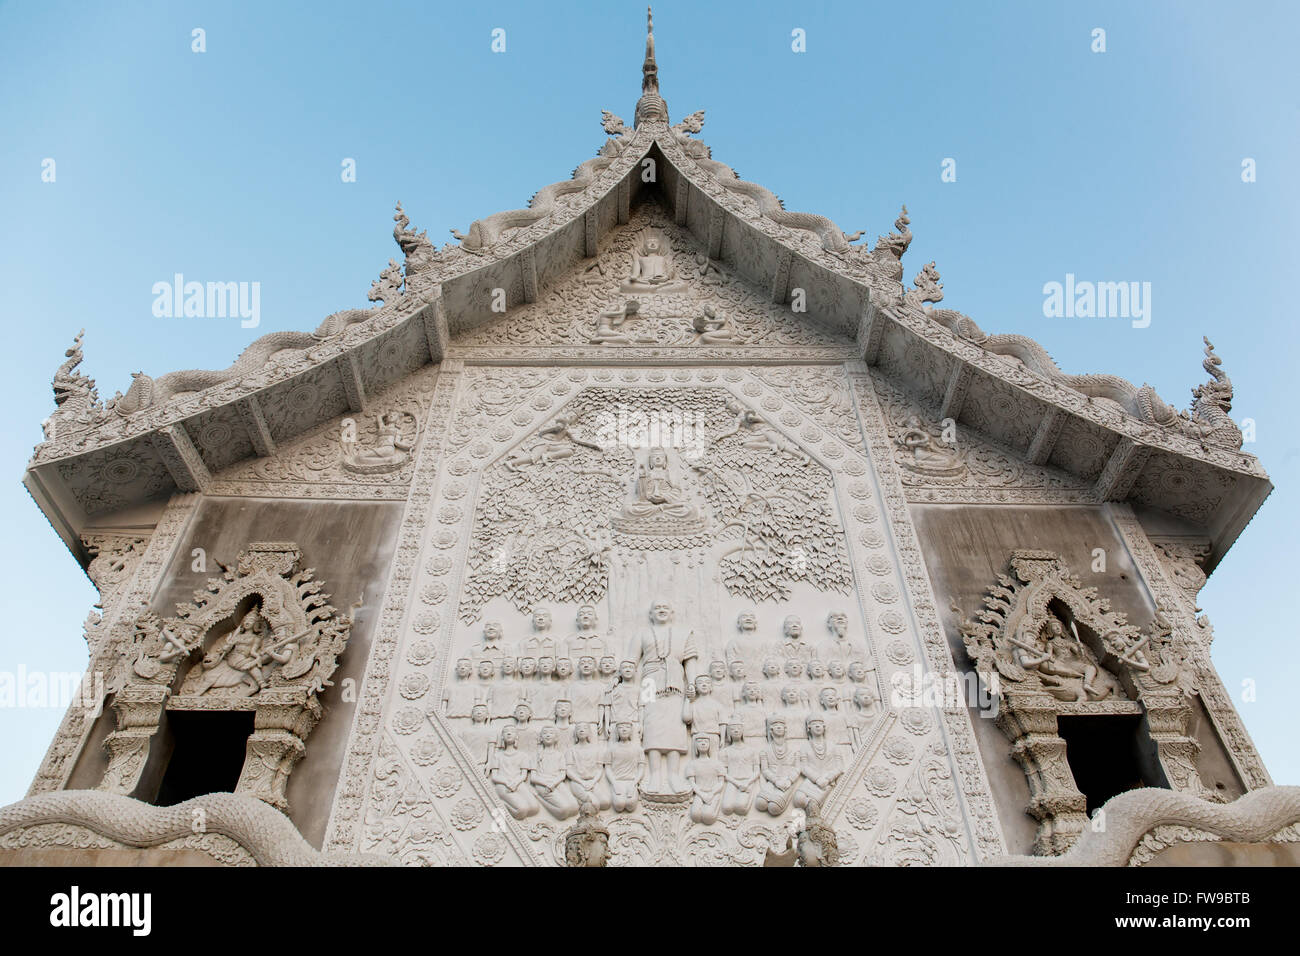 Relief at the bot of the Wat Huay Pla Kang temple, Buddhist frescoes, Chiang Rai Province, Northern Thailand, Thailand - Stock Image